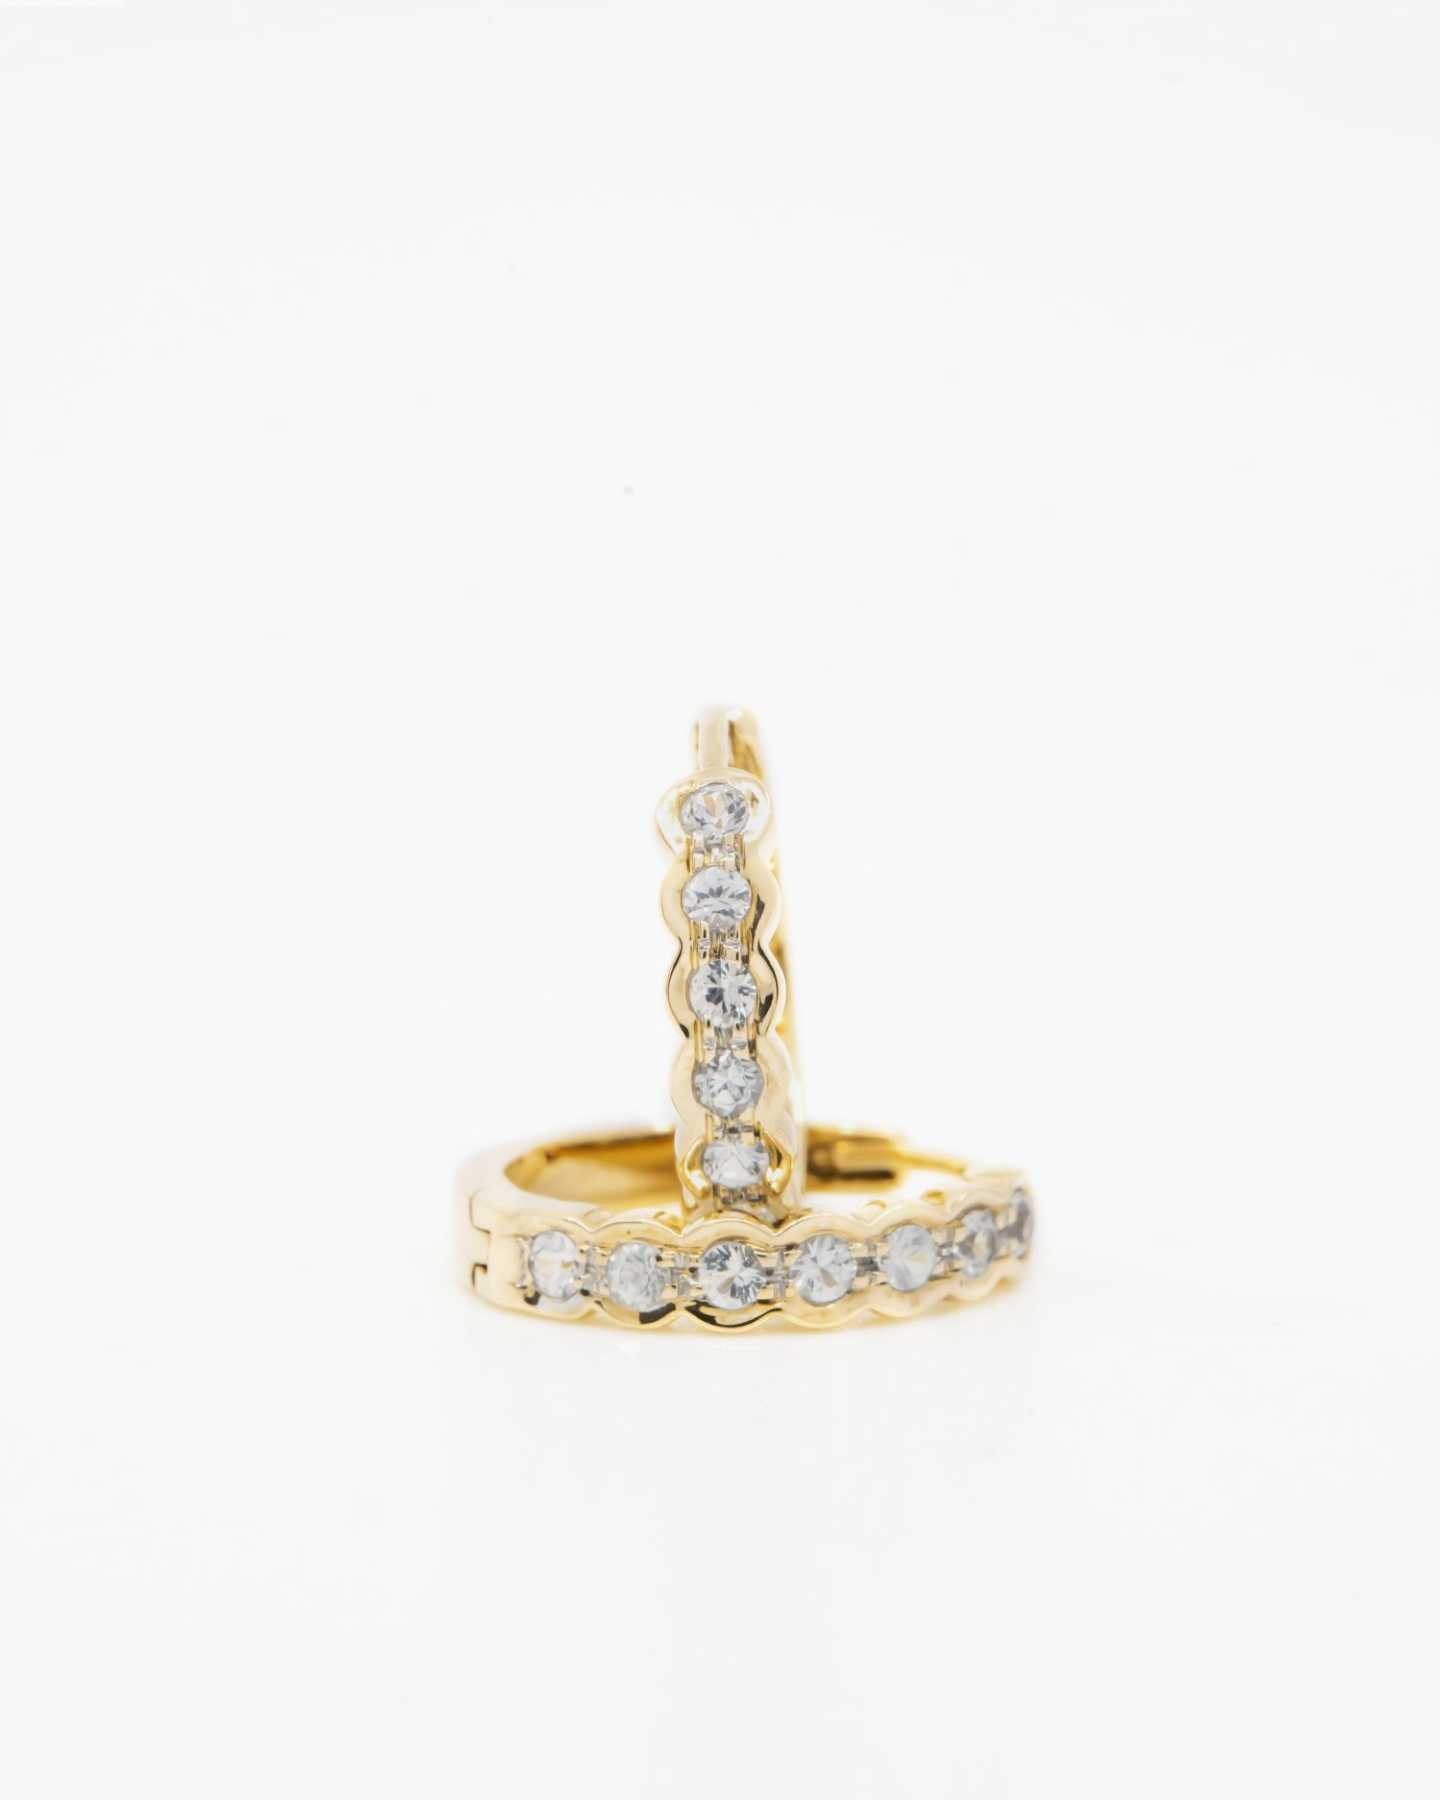 White Sapphire Huggie Earrings - Gold Vermeil - 1 - Thumbnail